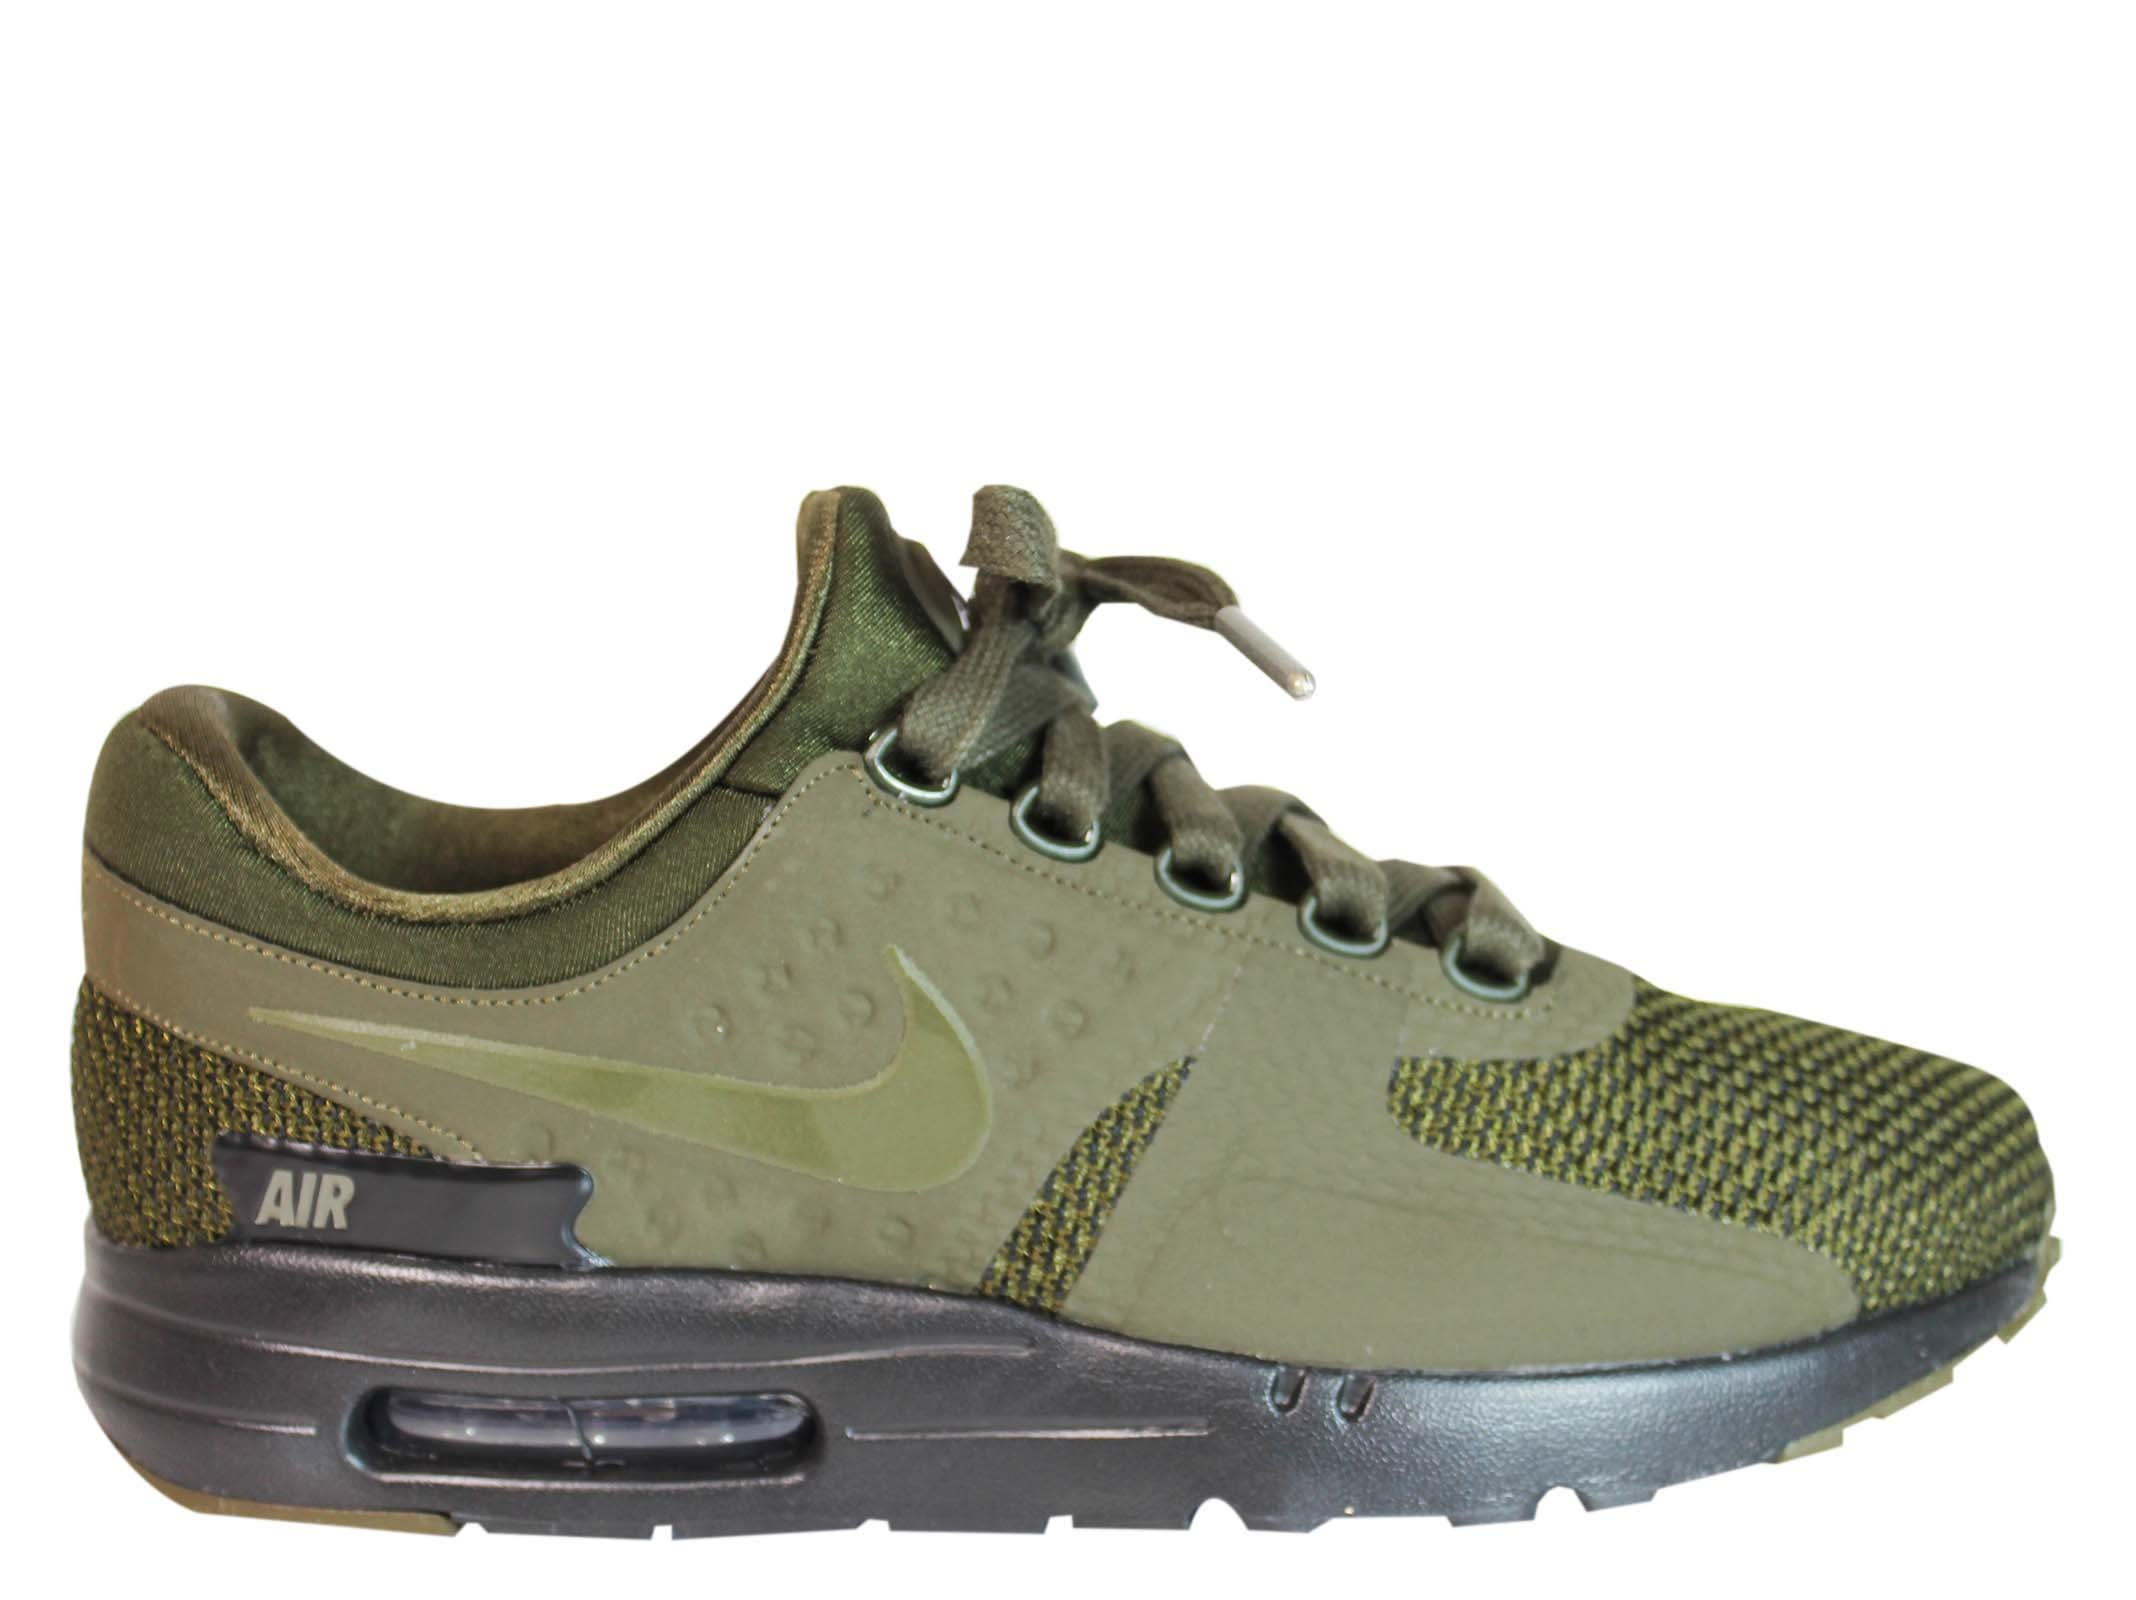 Nike Dark Loden Air Max Zero Sneakers